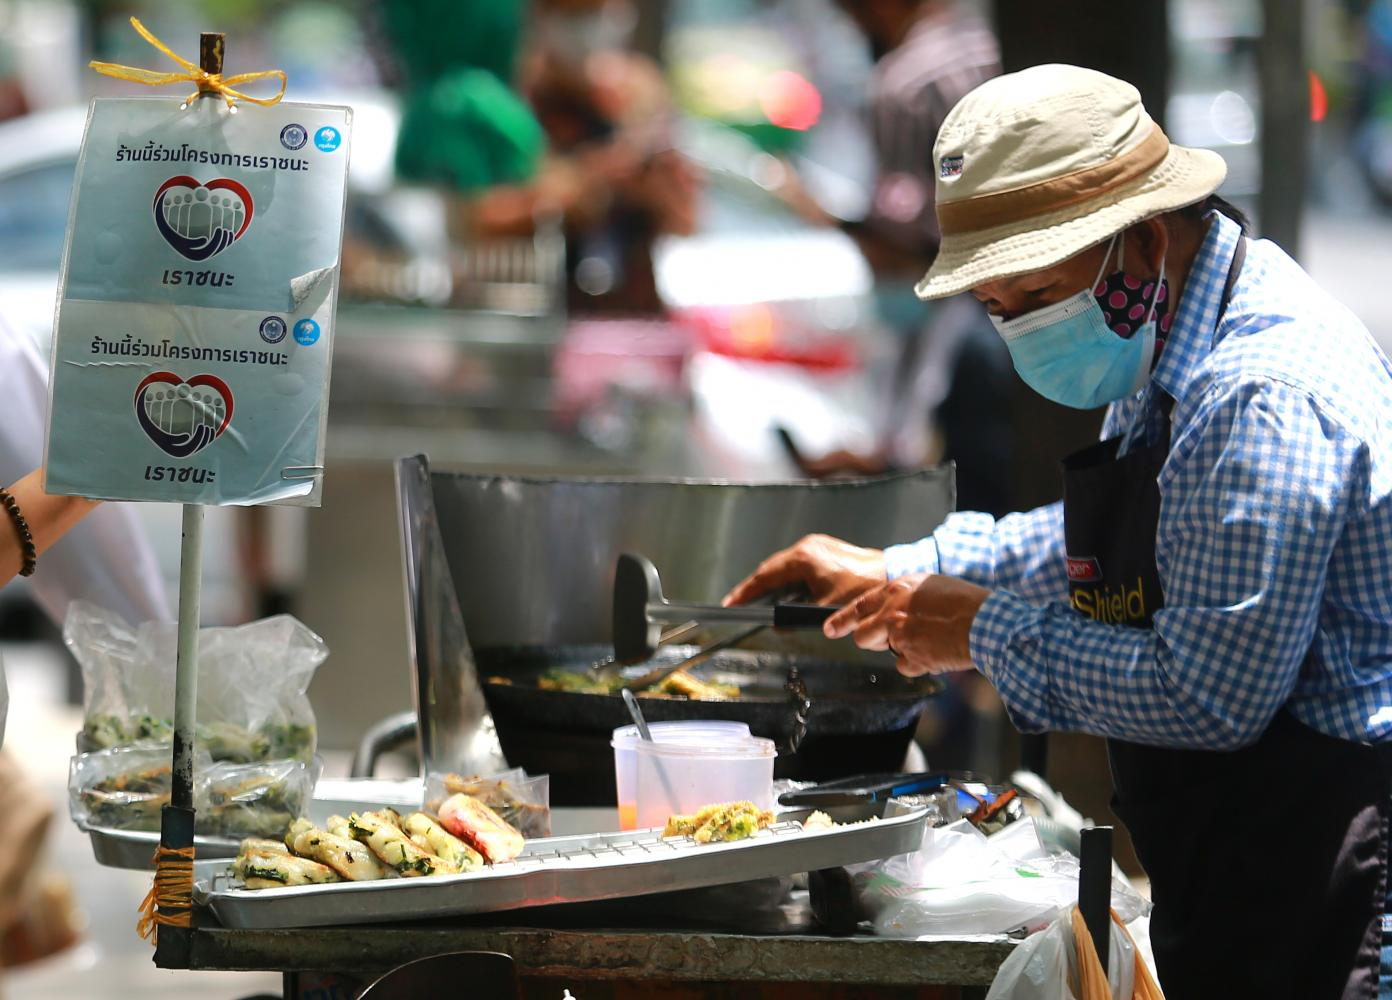 A sign for the Rao Chana (We Win) scheme is displayed at a food stall in the Silom area of Bangkok. Somchai Poomlard